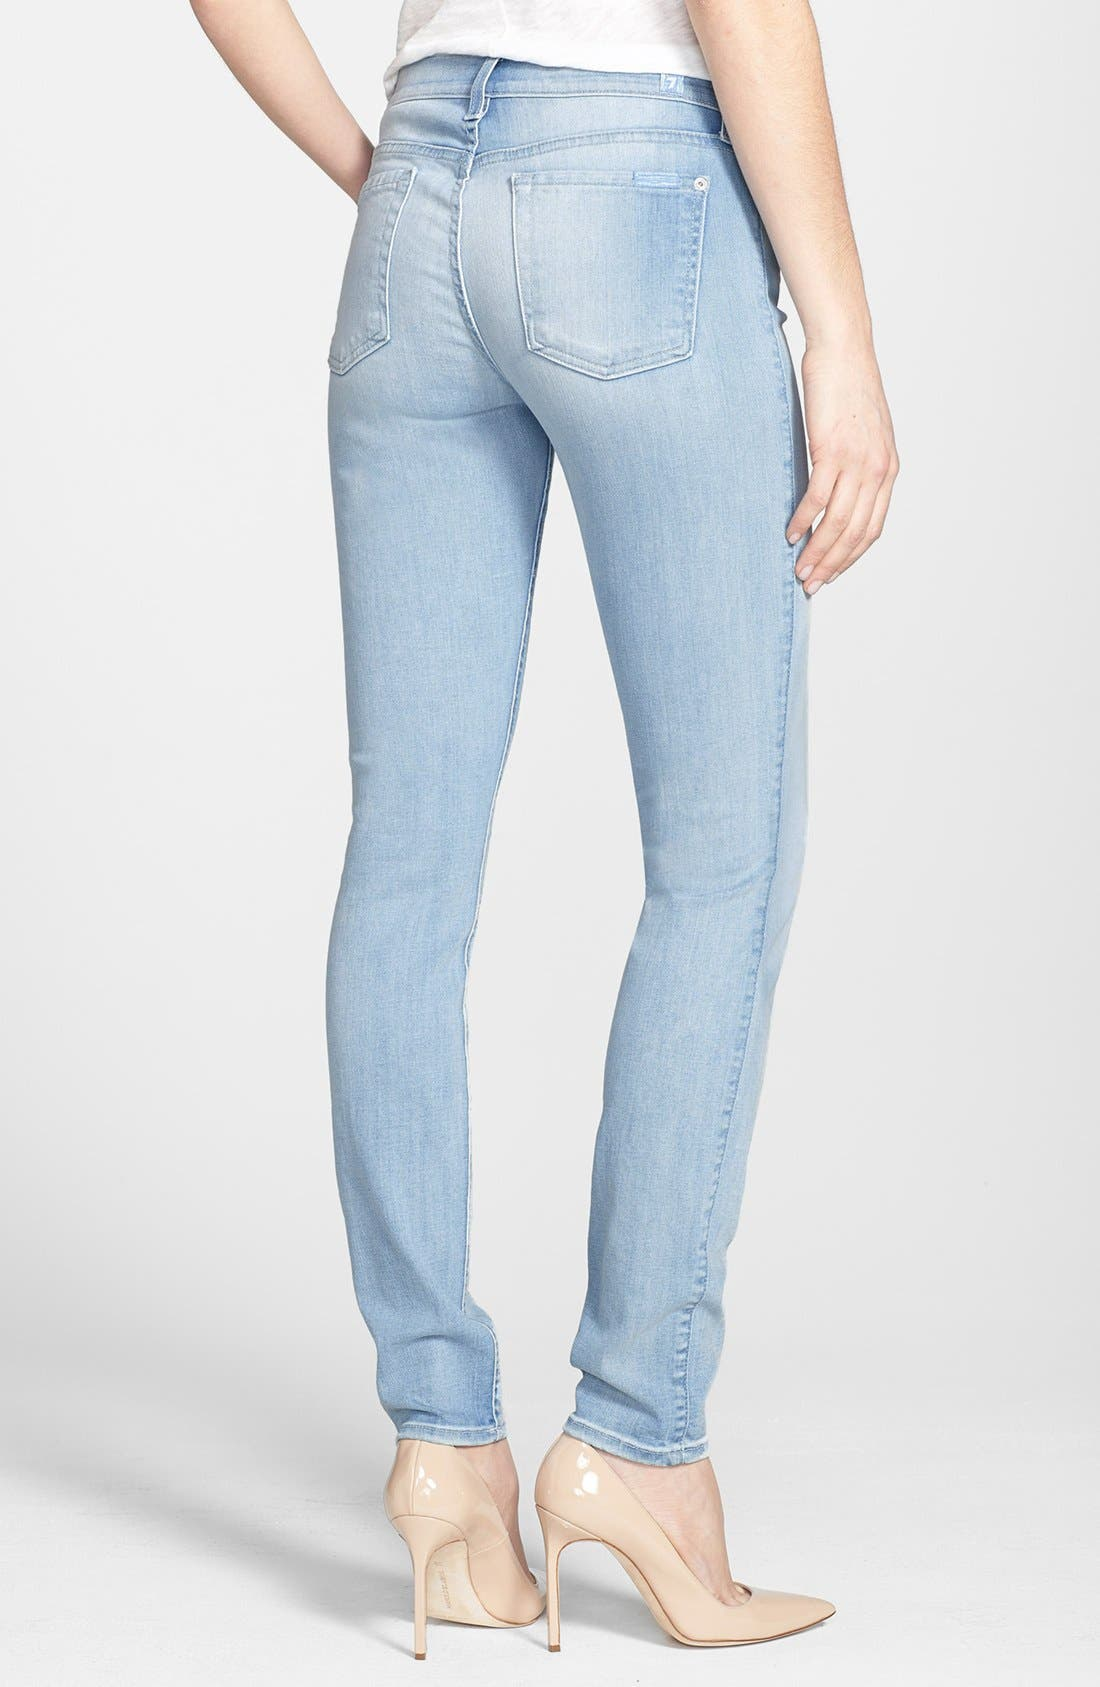 'The Skinny' Mid Rise Jeans,                             Alternate thumbnail 2, color,                             Sky Blue